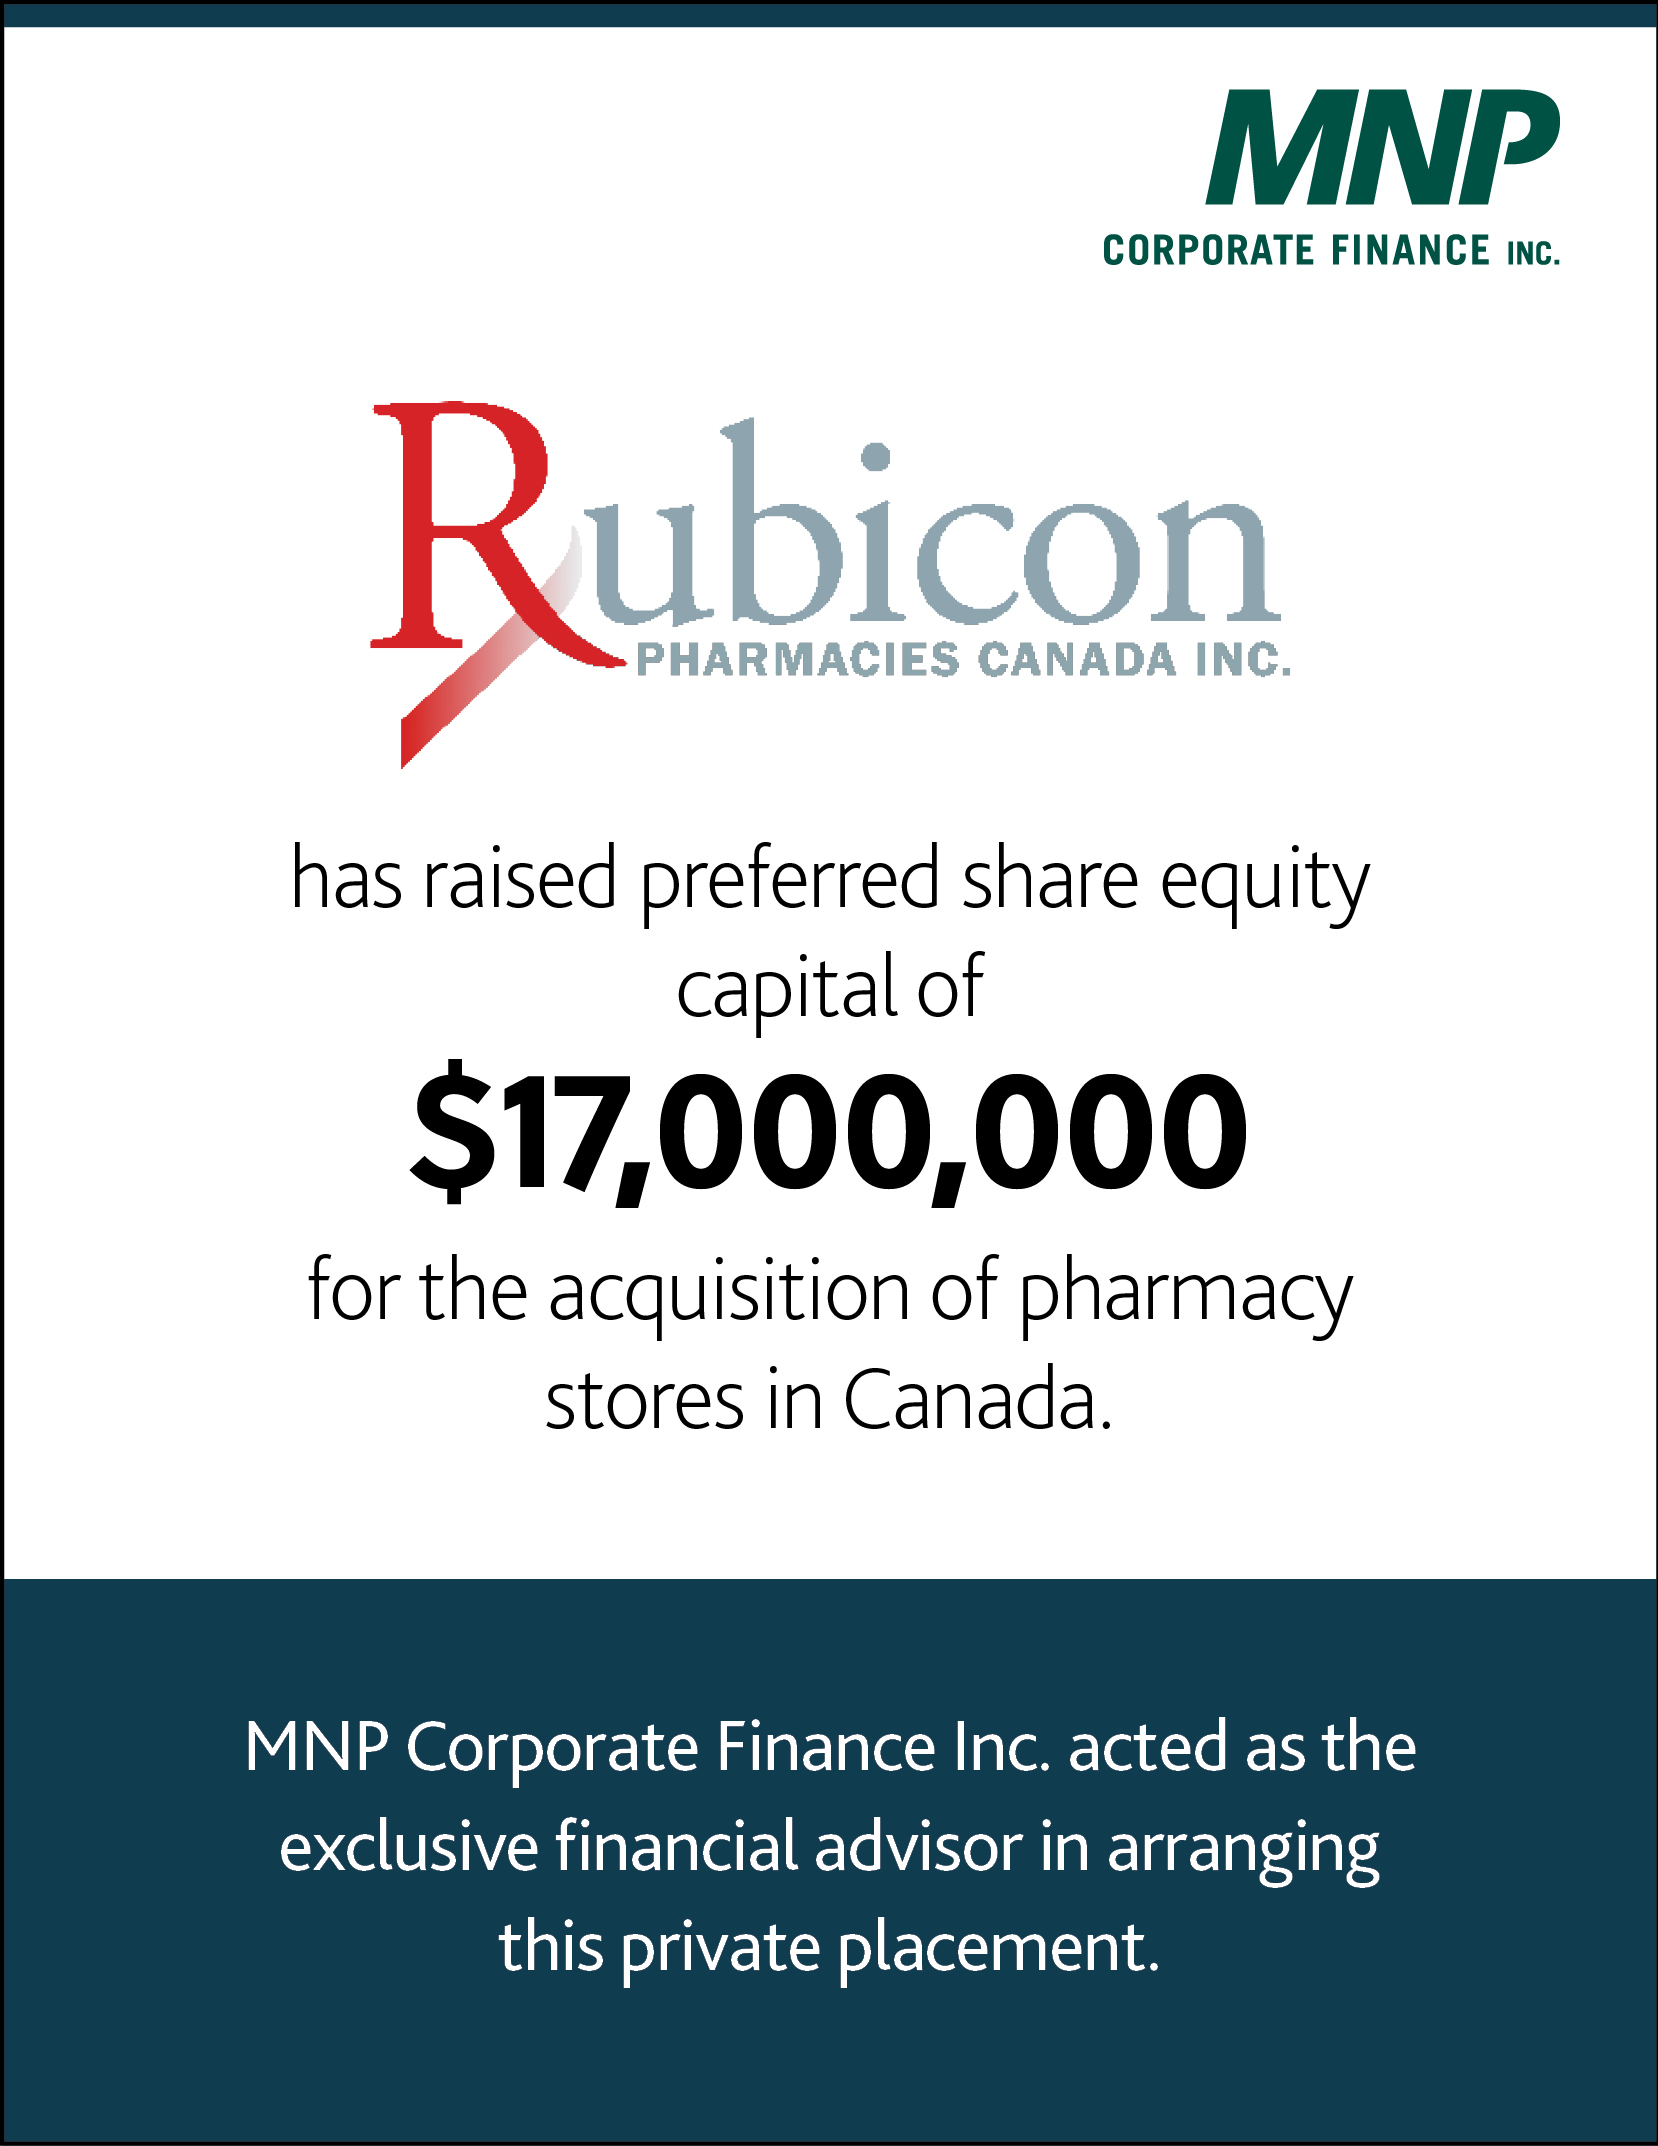 Rubicon Pharmacies Canada Inc. has raised preferred share equity capital of  $17,000,000  for the acquisition of pharmacy stores in Canada.